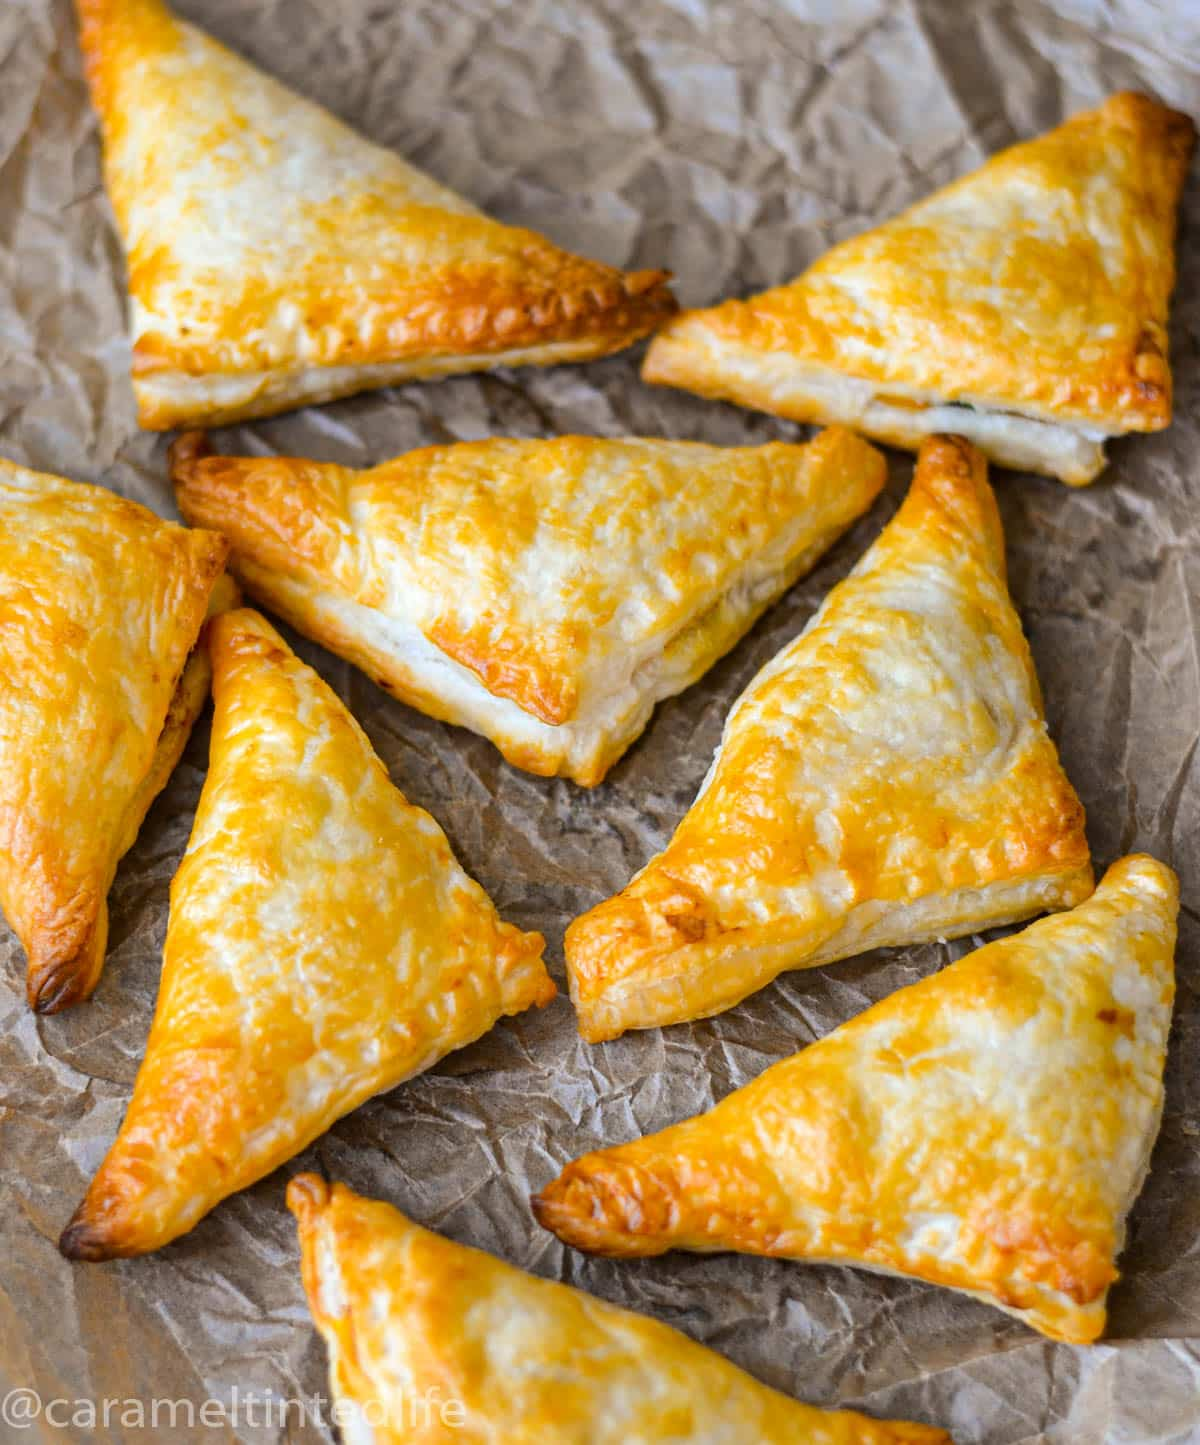 Golden brown puff pastry samosas out of the oven